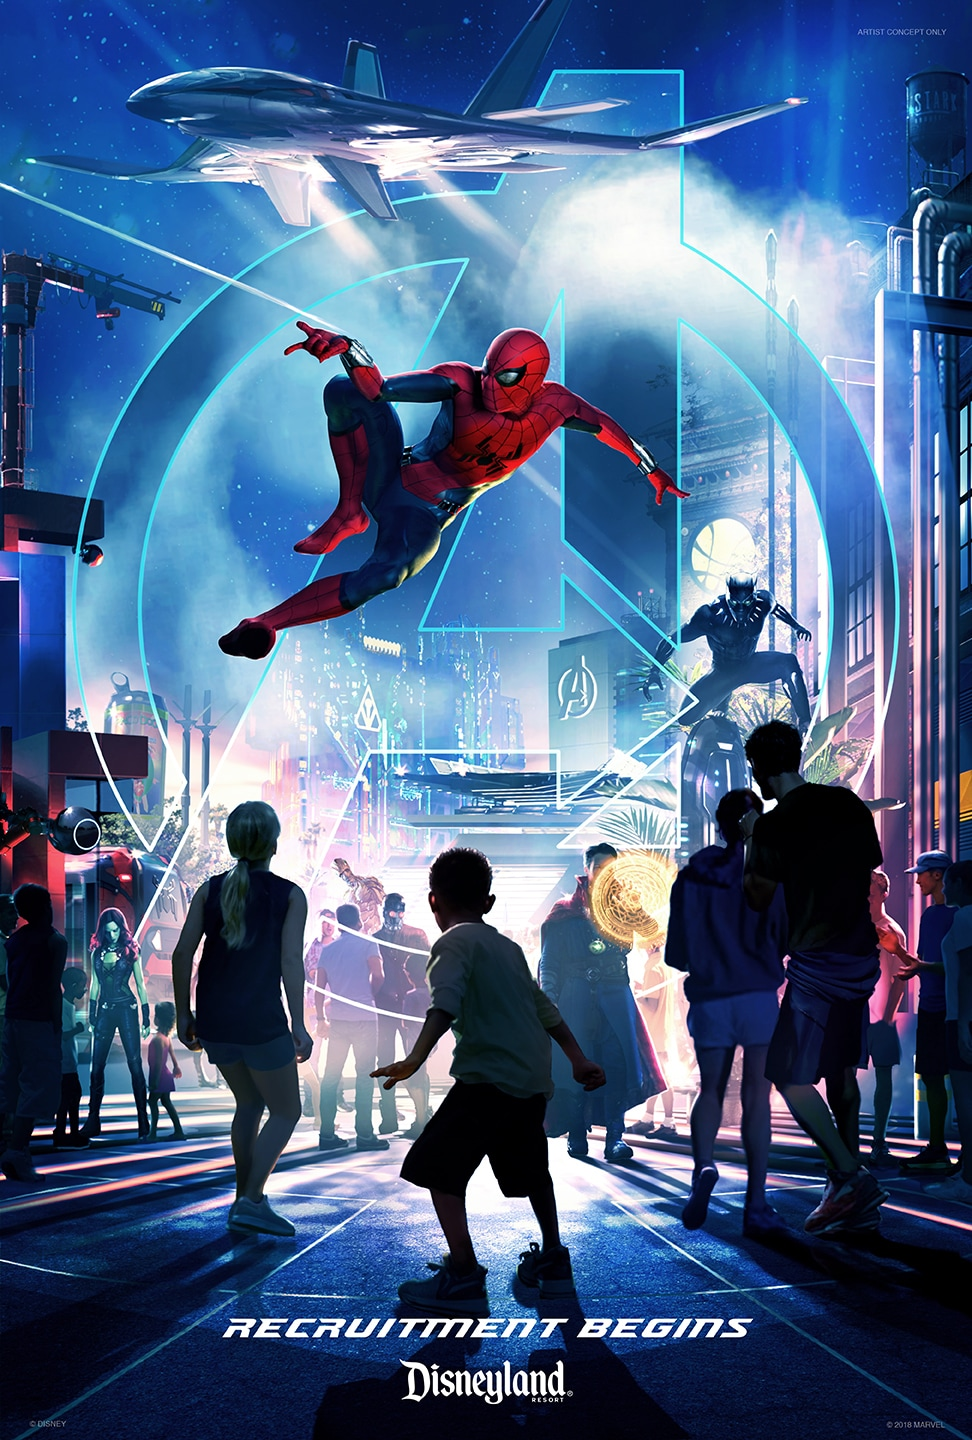 Spiderman shoots web from his wrist in a poster for a new attraction at Disneyland resort.